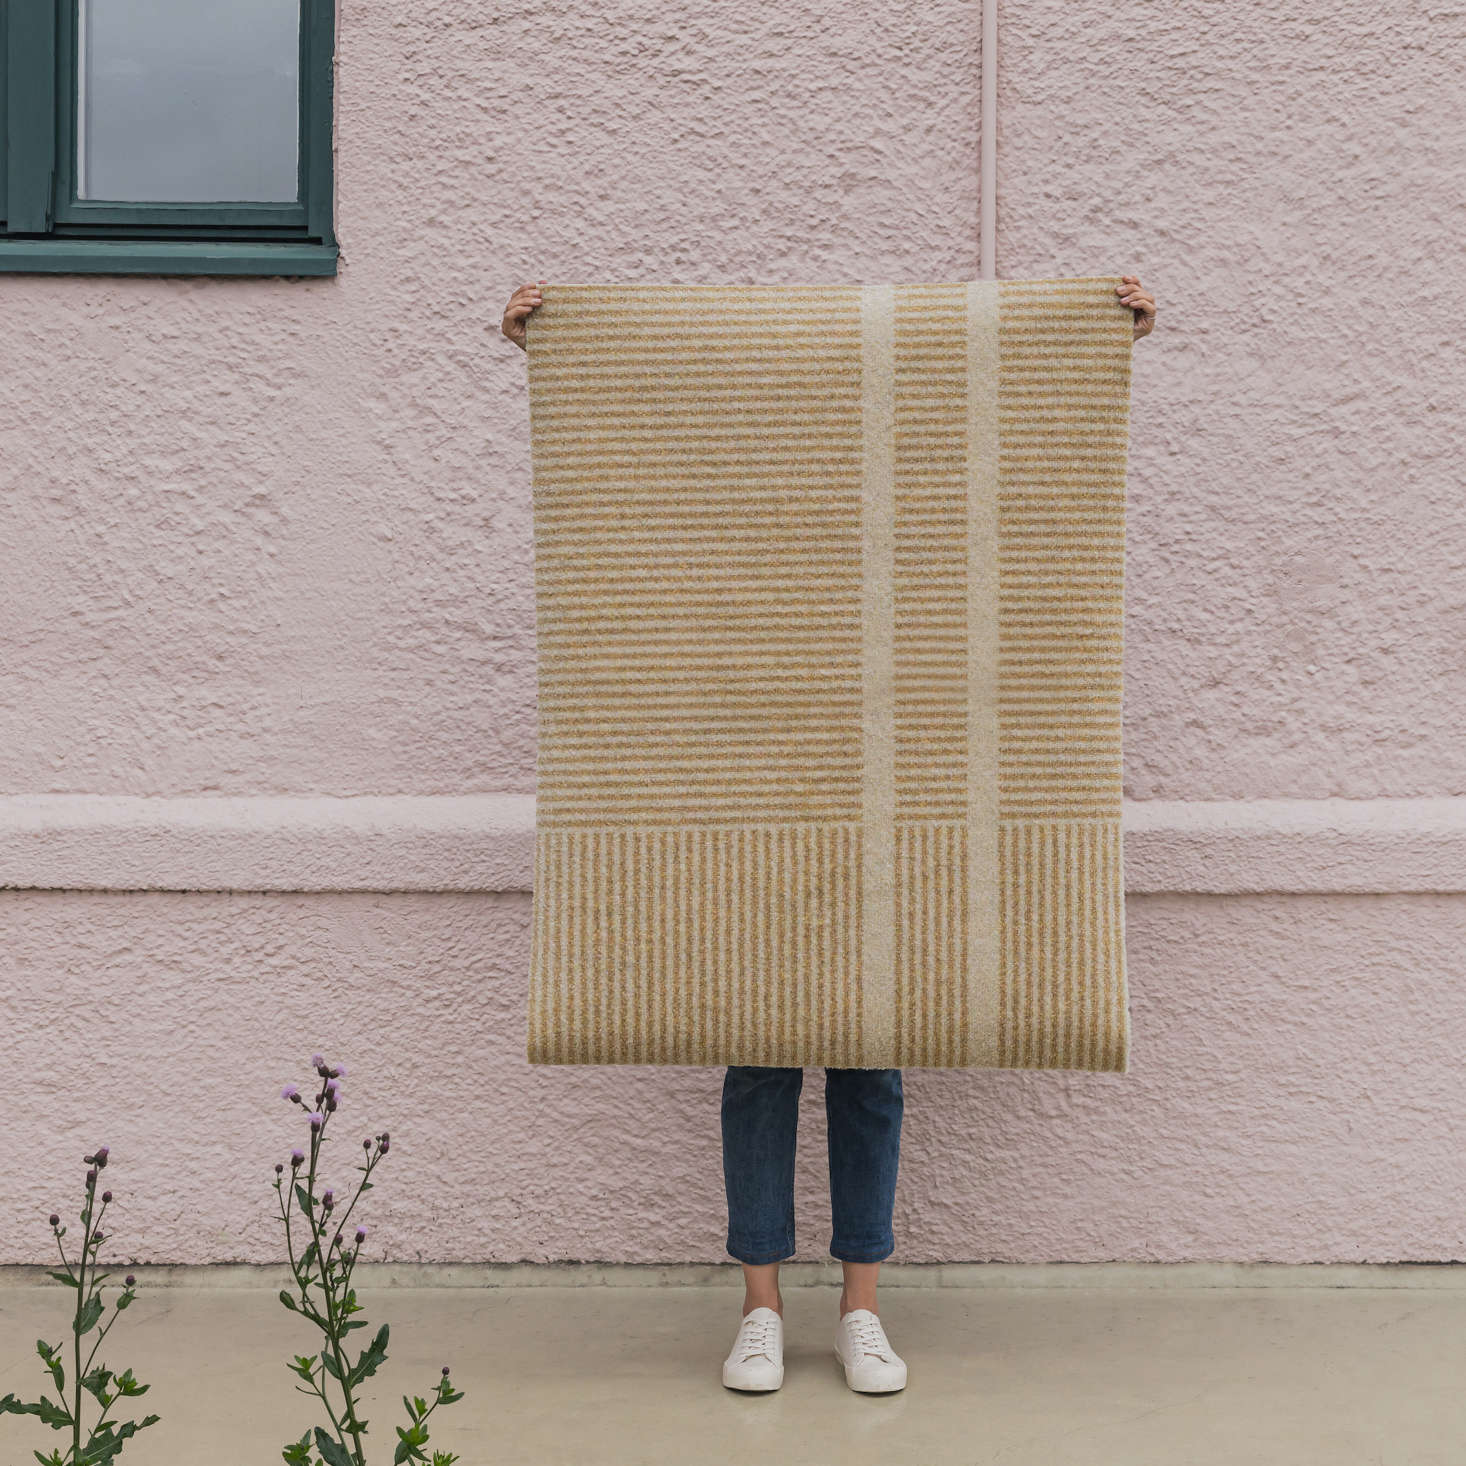 The Heymat Løype design comes in four colors and three sizes, starting at $0. These mats are machine washable, and have enough weight that they won&#8